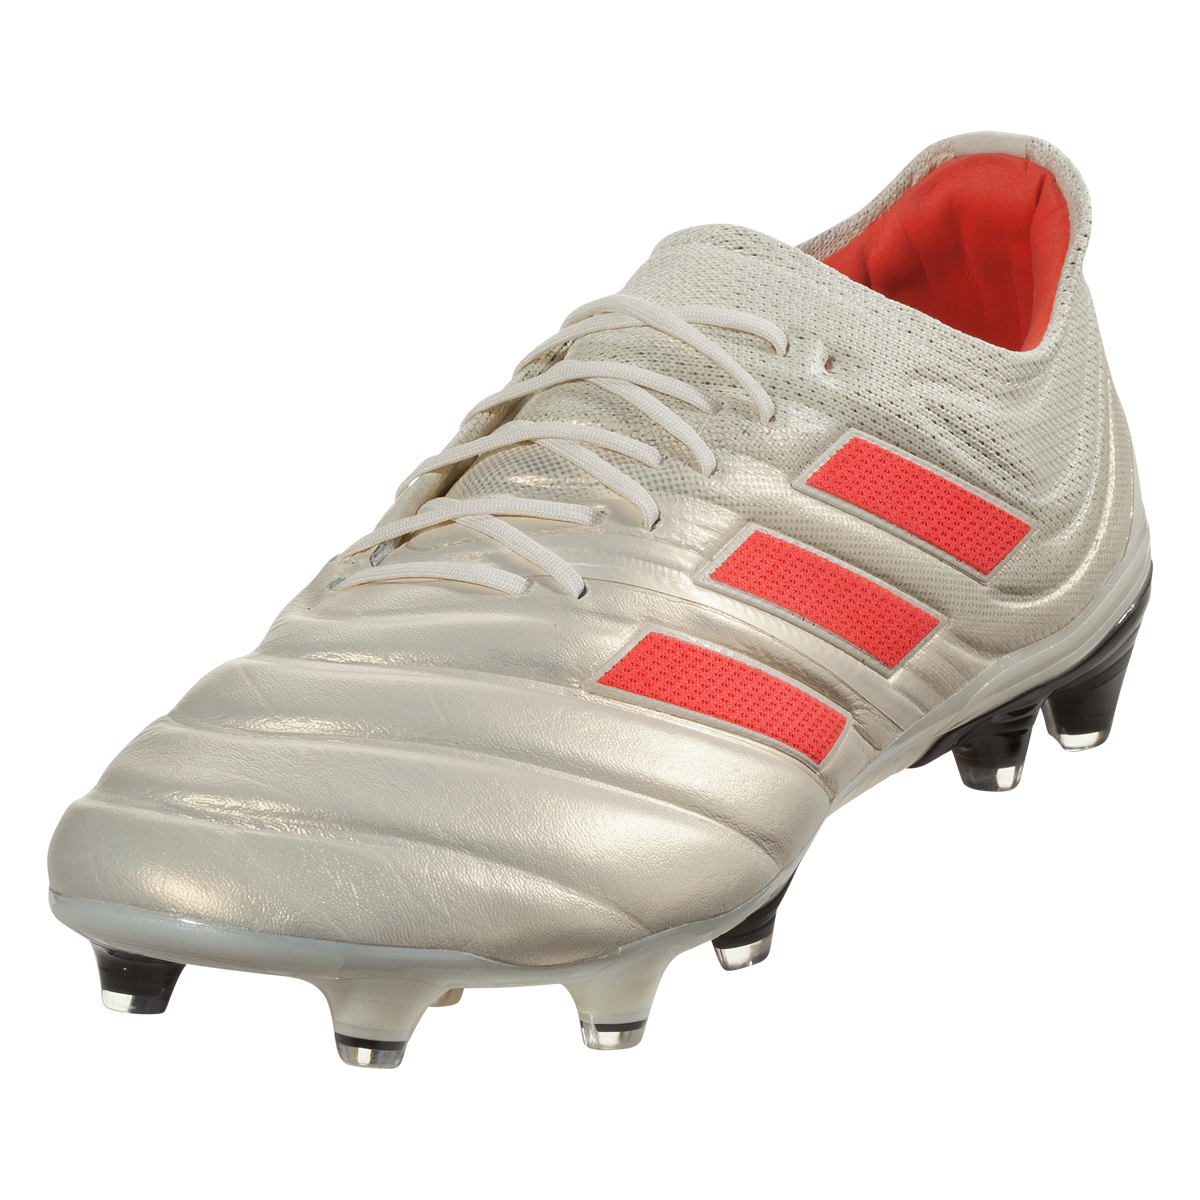 Adidas Copa 19 1 Fg Firm Ground Soccer Cleat Off White Solar Red Off White 9 5 Soccer Cleats Cleats Soccer